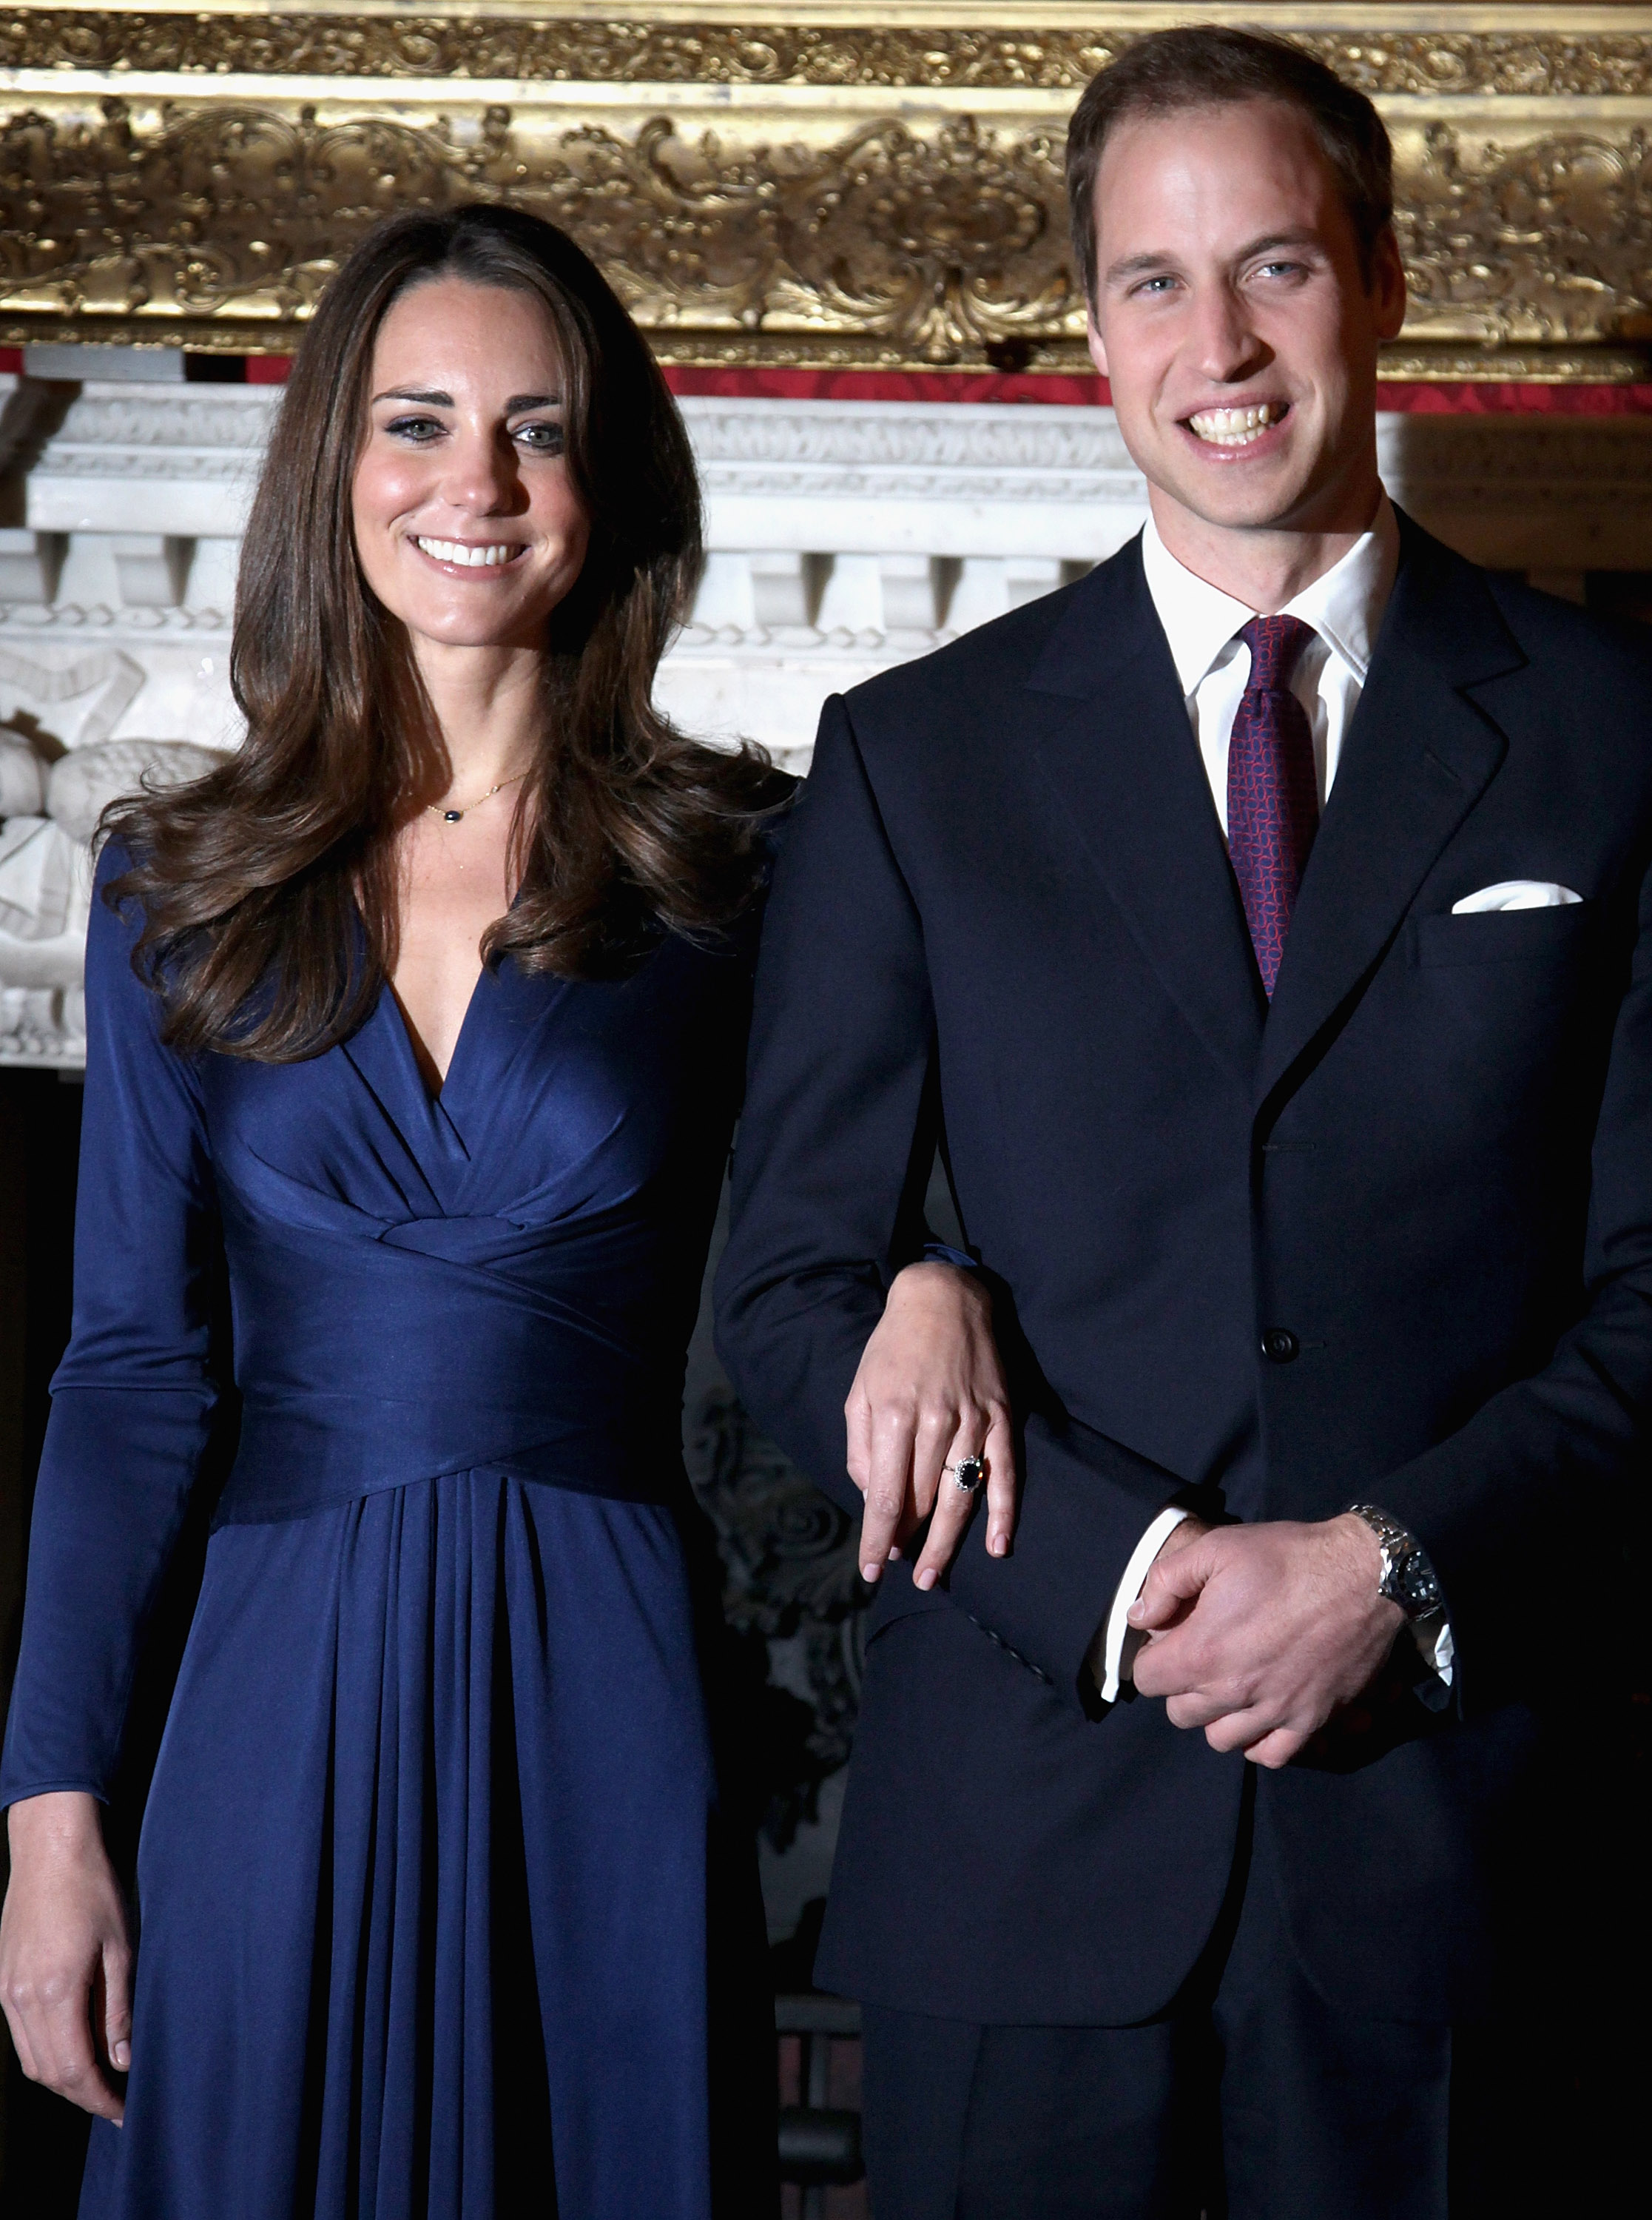 Prince william and kate middleton marriage video